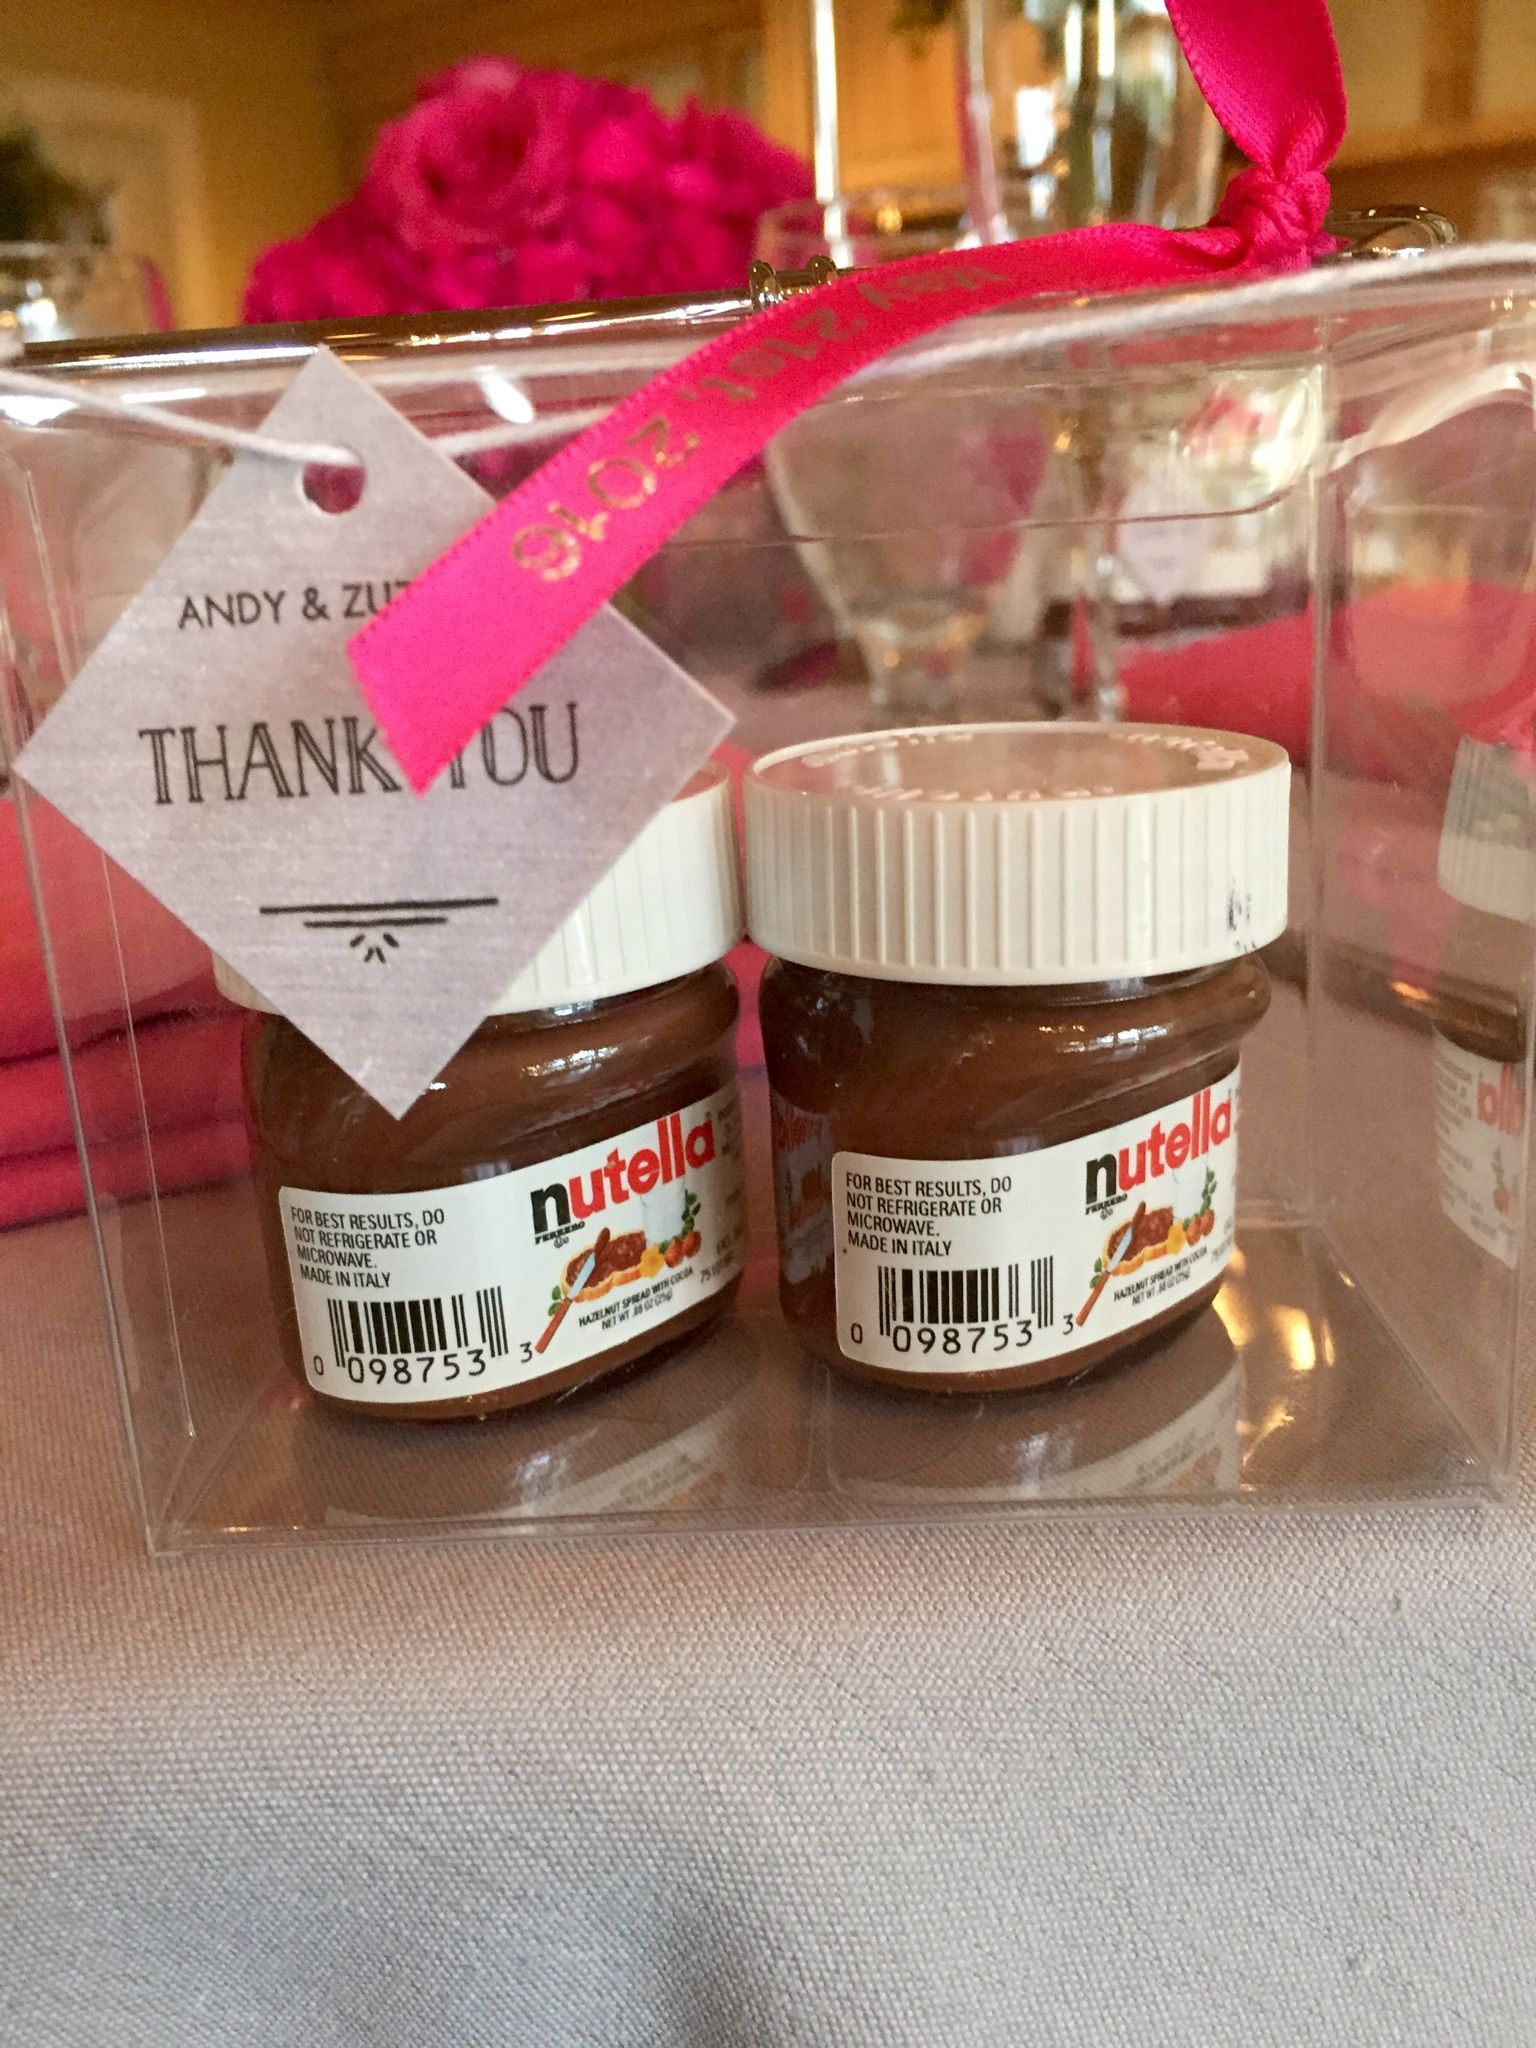 What a cute idea for a wedding favor! Spread The Love With Nutella ...